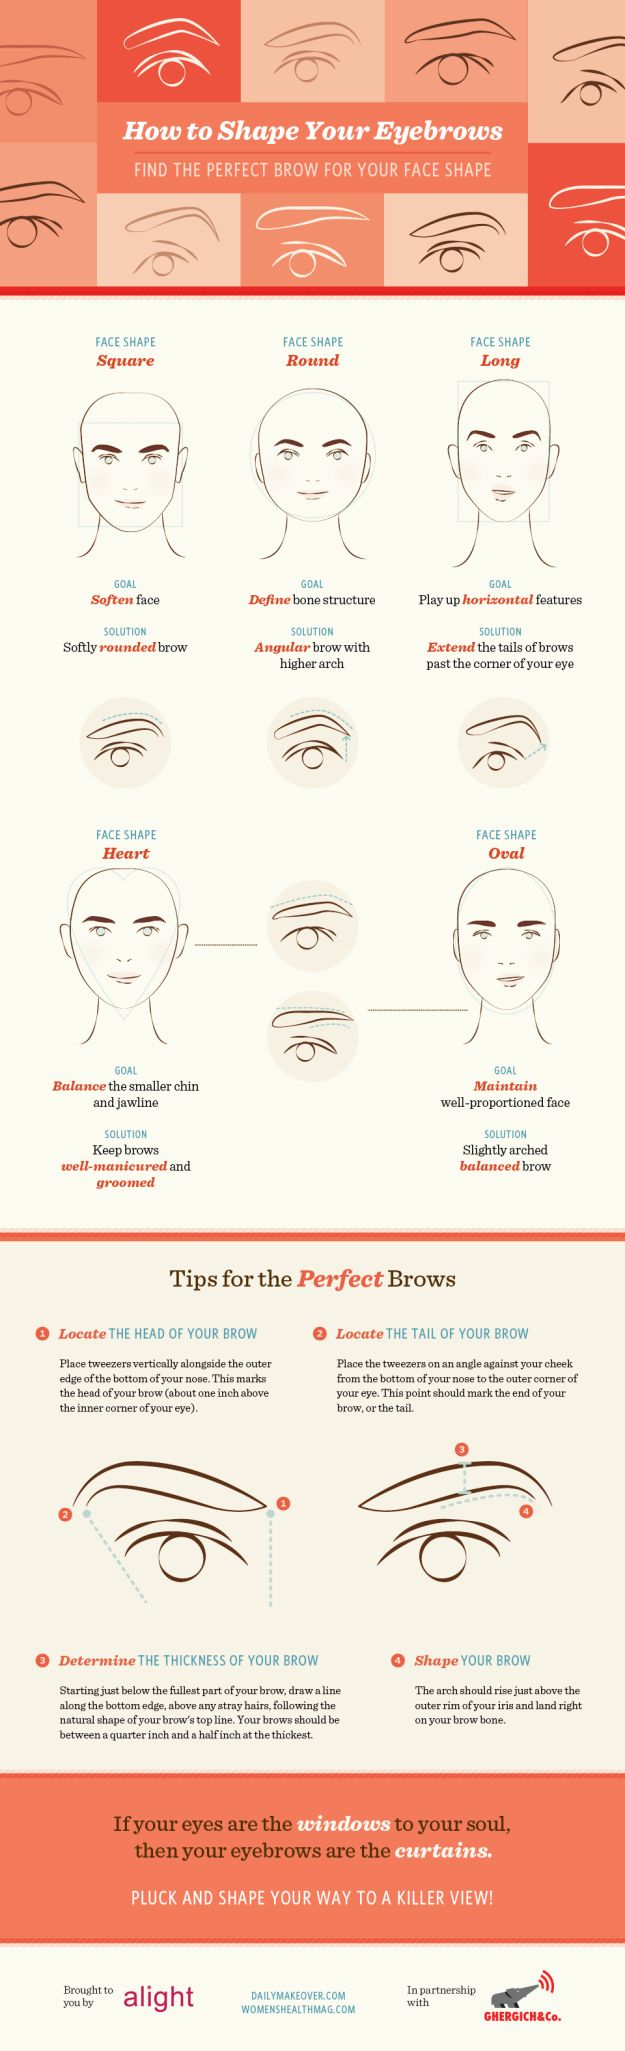 If you want to go further, you can sculpt your eyebrows to match your face…